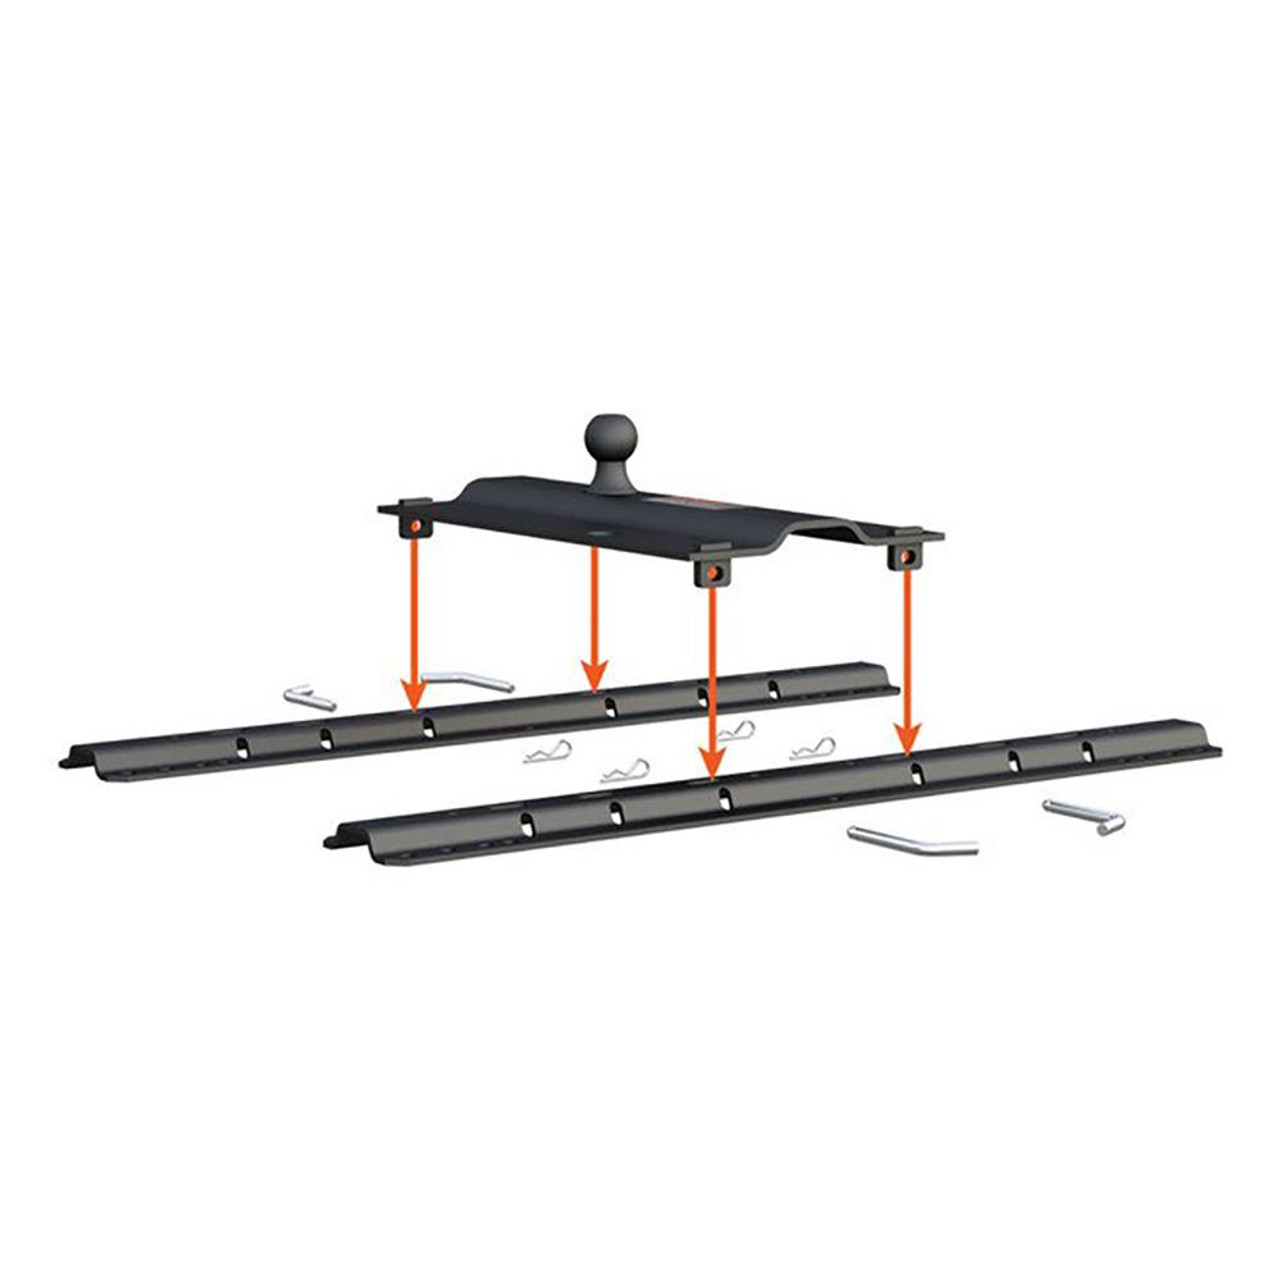 """Gooseneck Bent Plate-2-5/16"""" trailer ball included-Mounts to all standard fifth wheel rails-Durable powder coat finish resists rust and corrosion"""